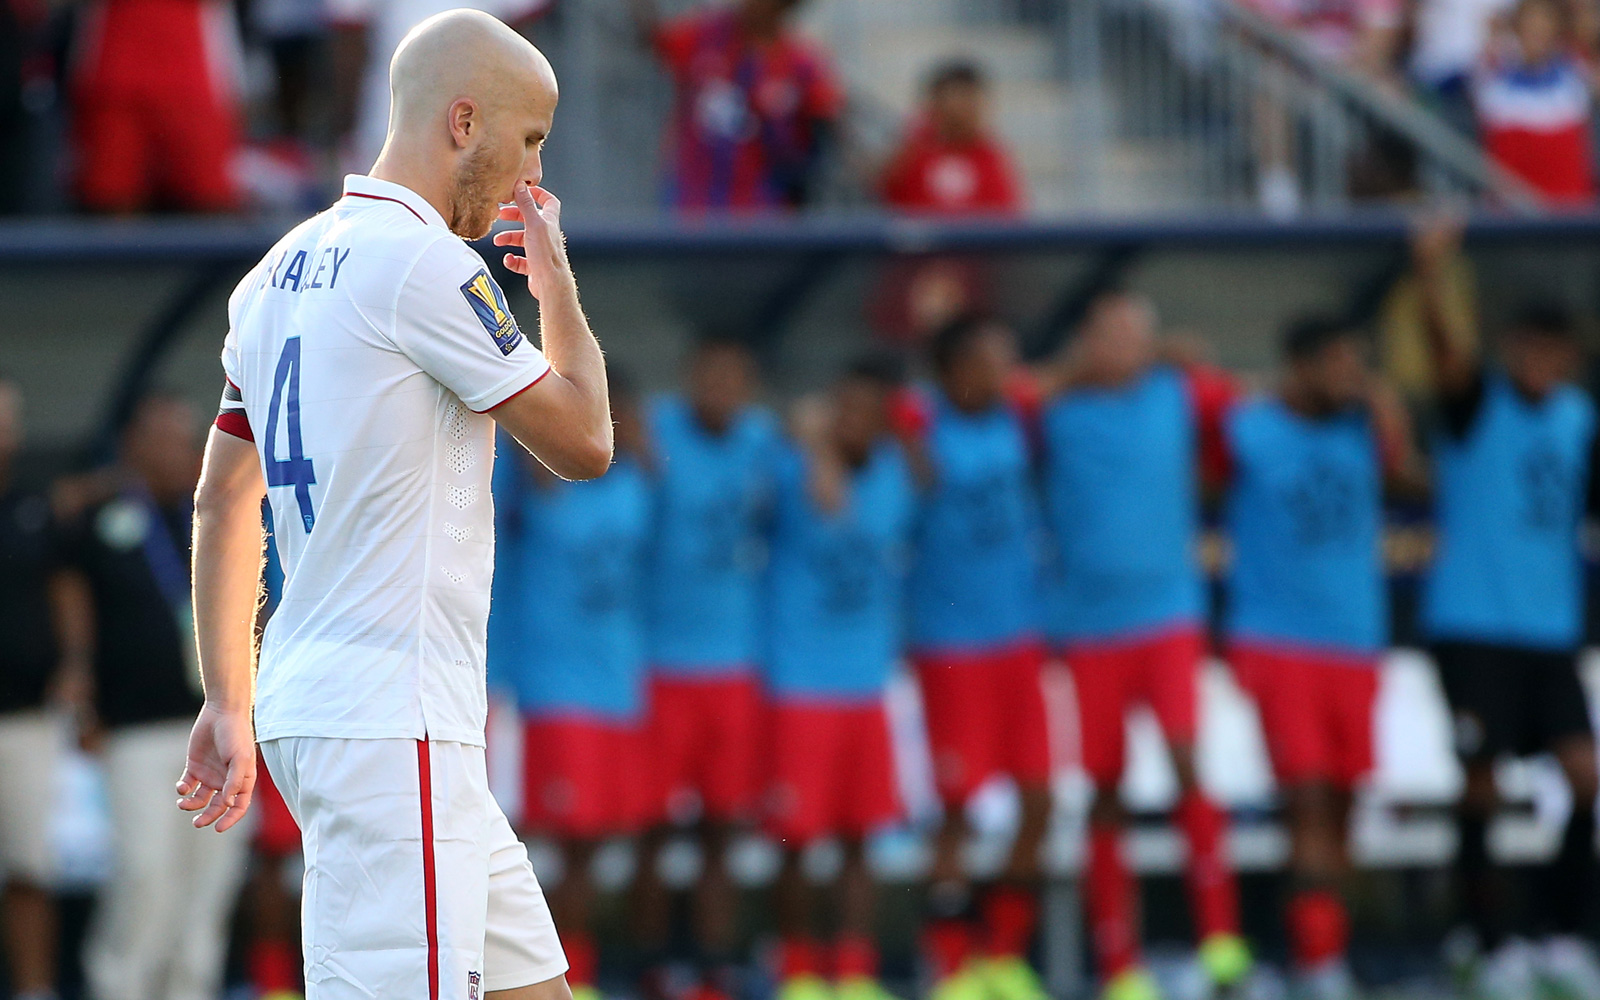 Michael Bradley walks away in dismay after having a penalty saved in a PK shootout in the USA's loss to Panama in the Gold Cup third-place game. After a 1-1 draw, Panama prevailed 3-2 in PKs, the USA's first shootout in 10 years.